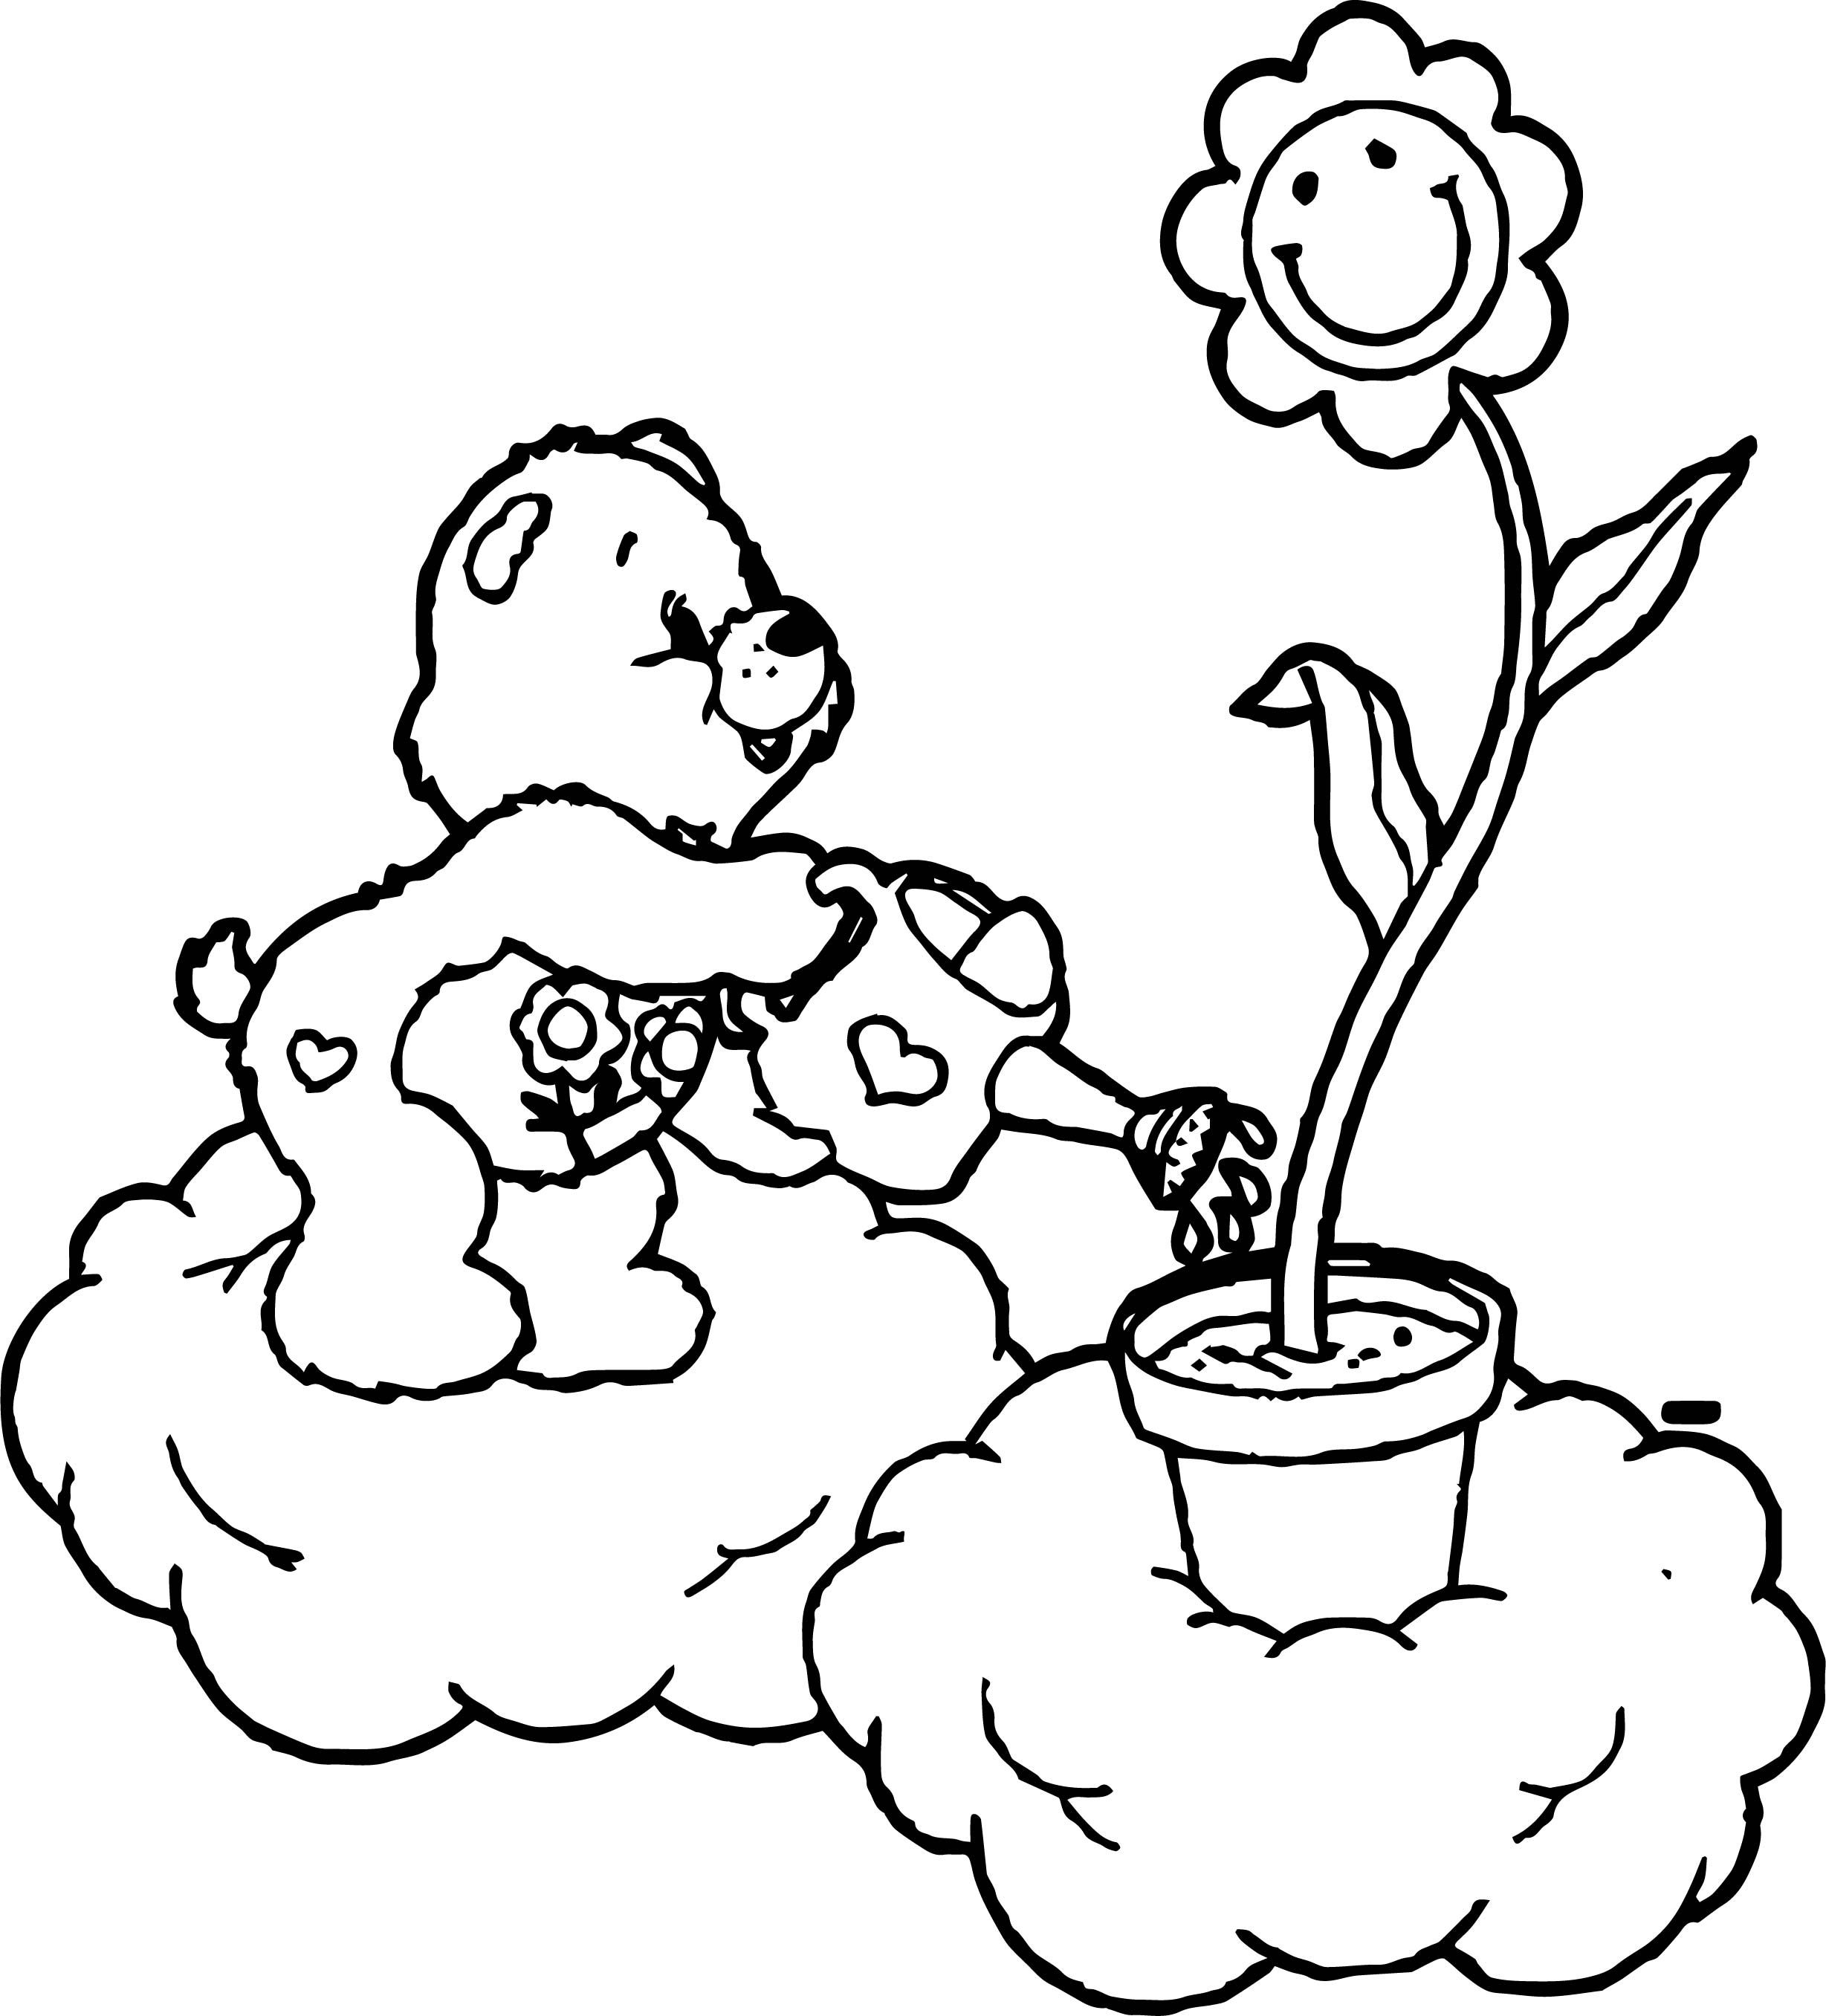 Awesome Care Bears To Water The Flowers Coloring Page Flower Coloring Pages Coloring Pages Flowers